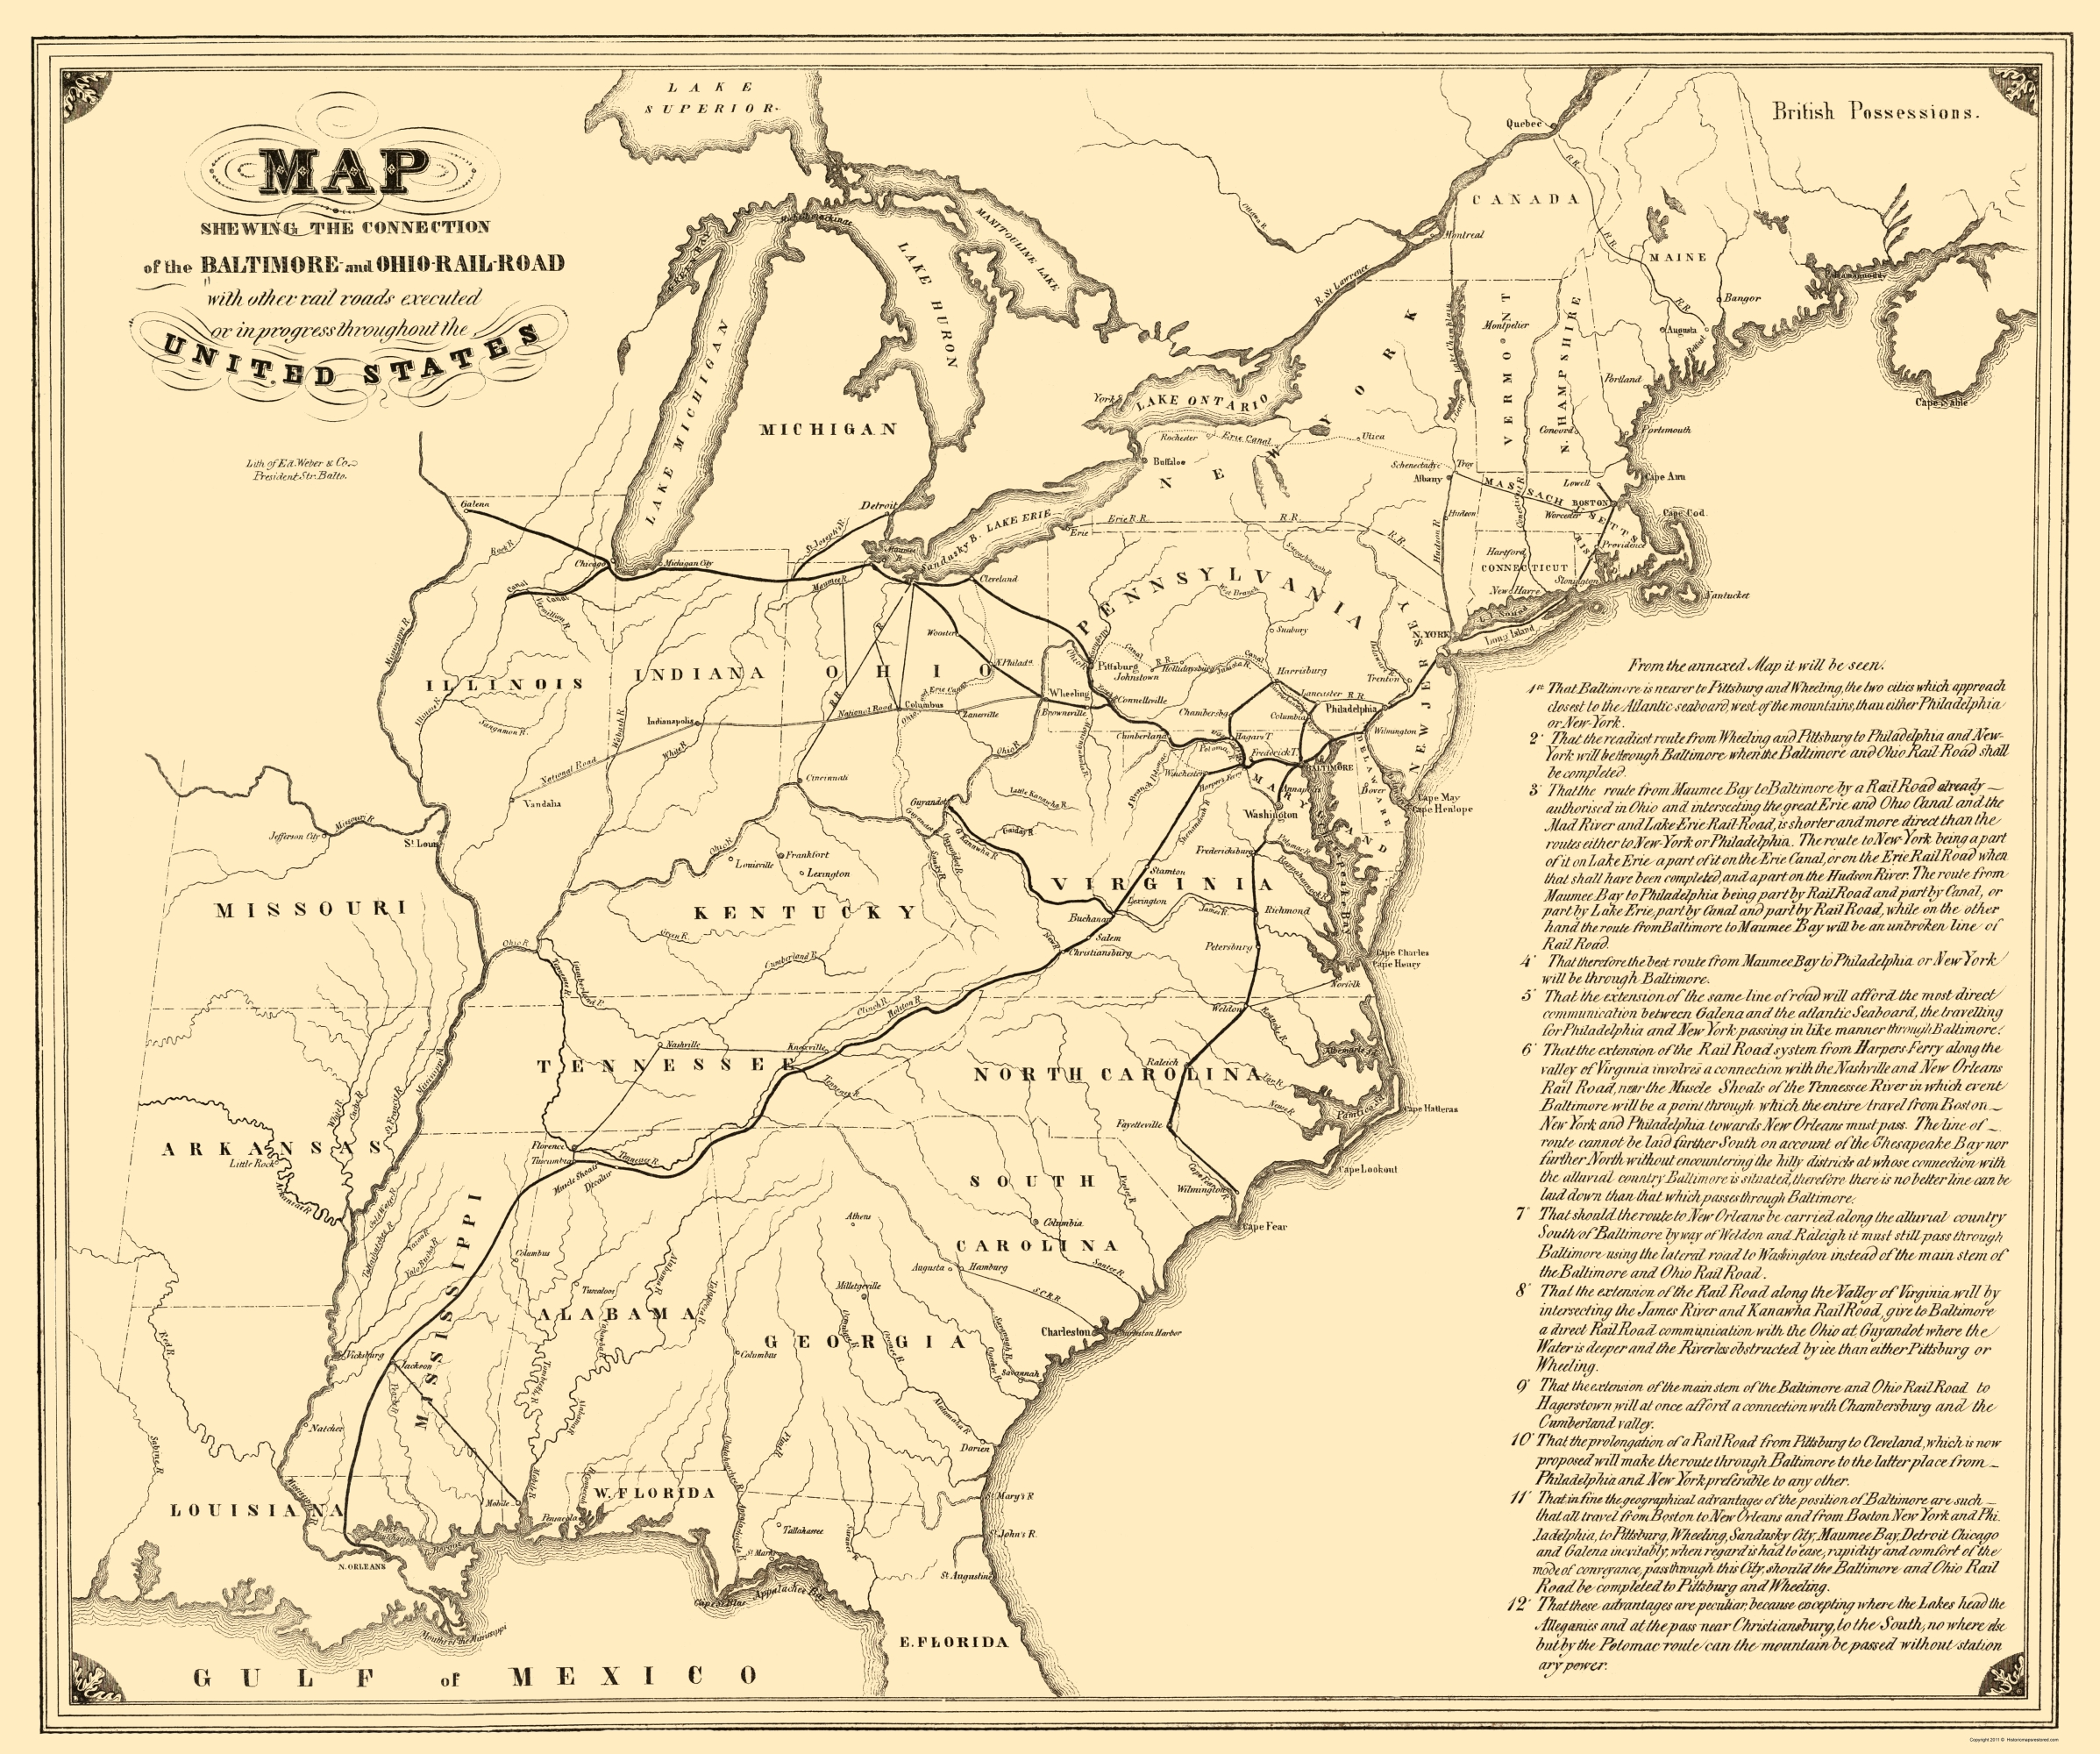 Old Map Baltimore Ohio Railroad With Connections - Map of the us in 1840